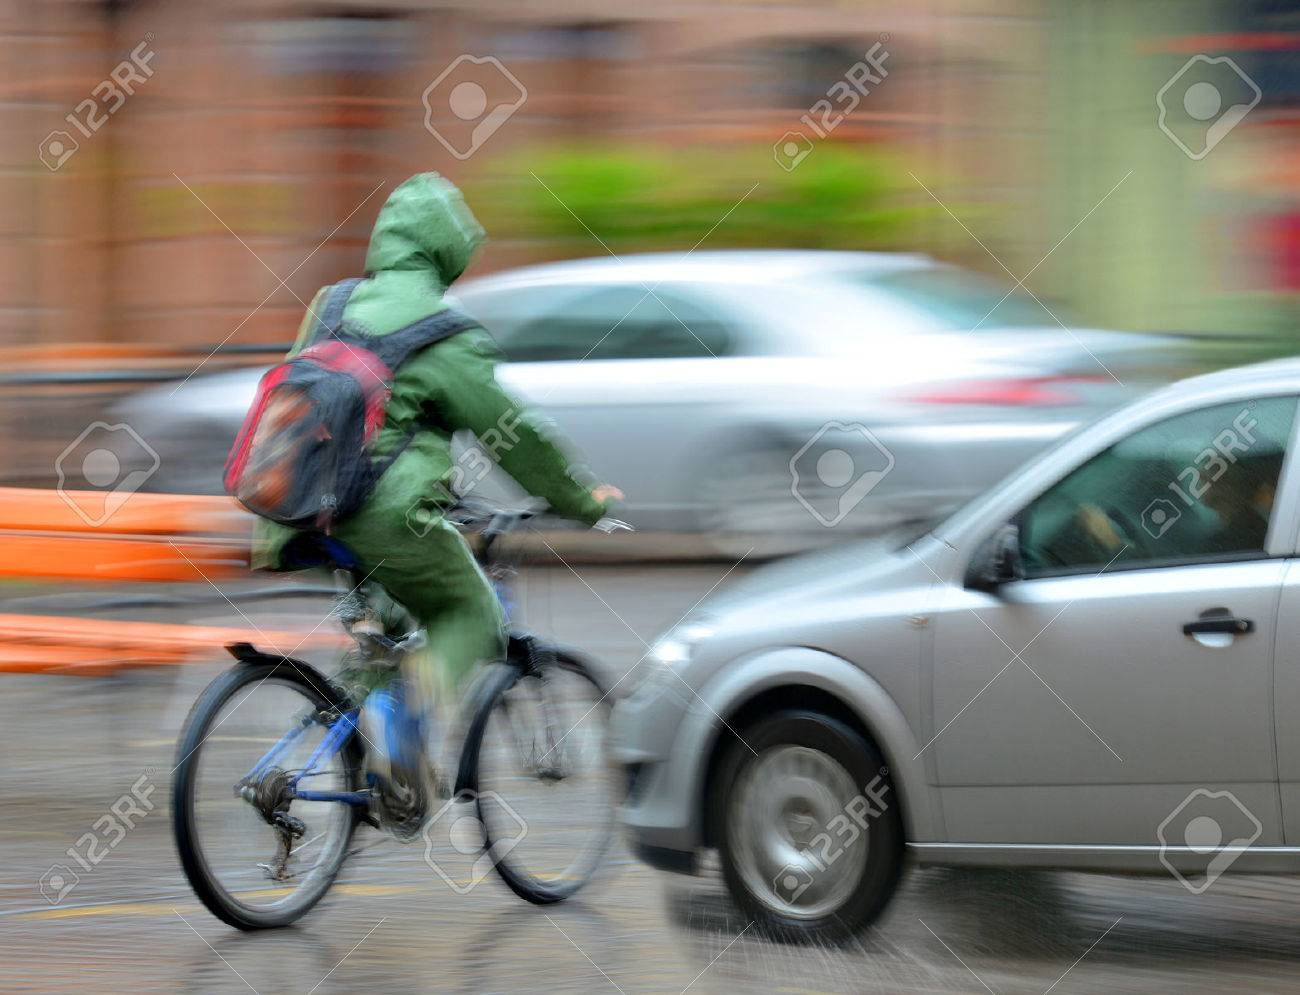 Dangerous city traffic situation with cyclist and car in the city in motion blur - 32767094